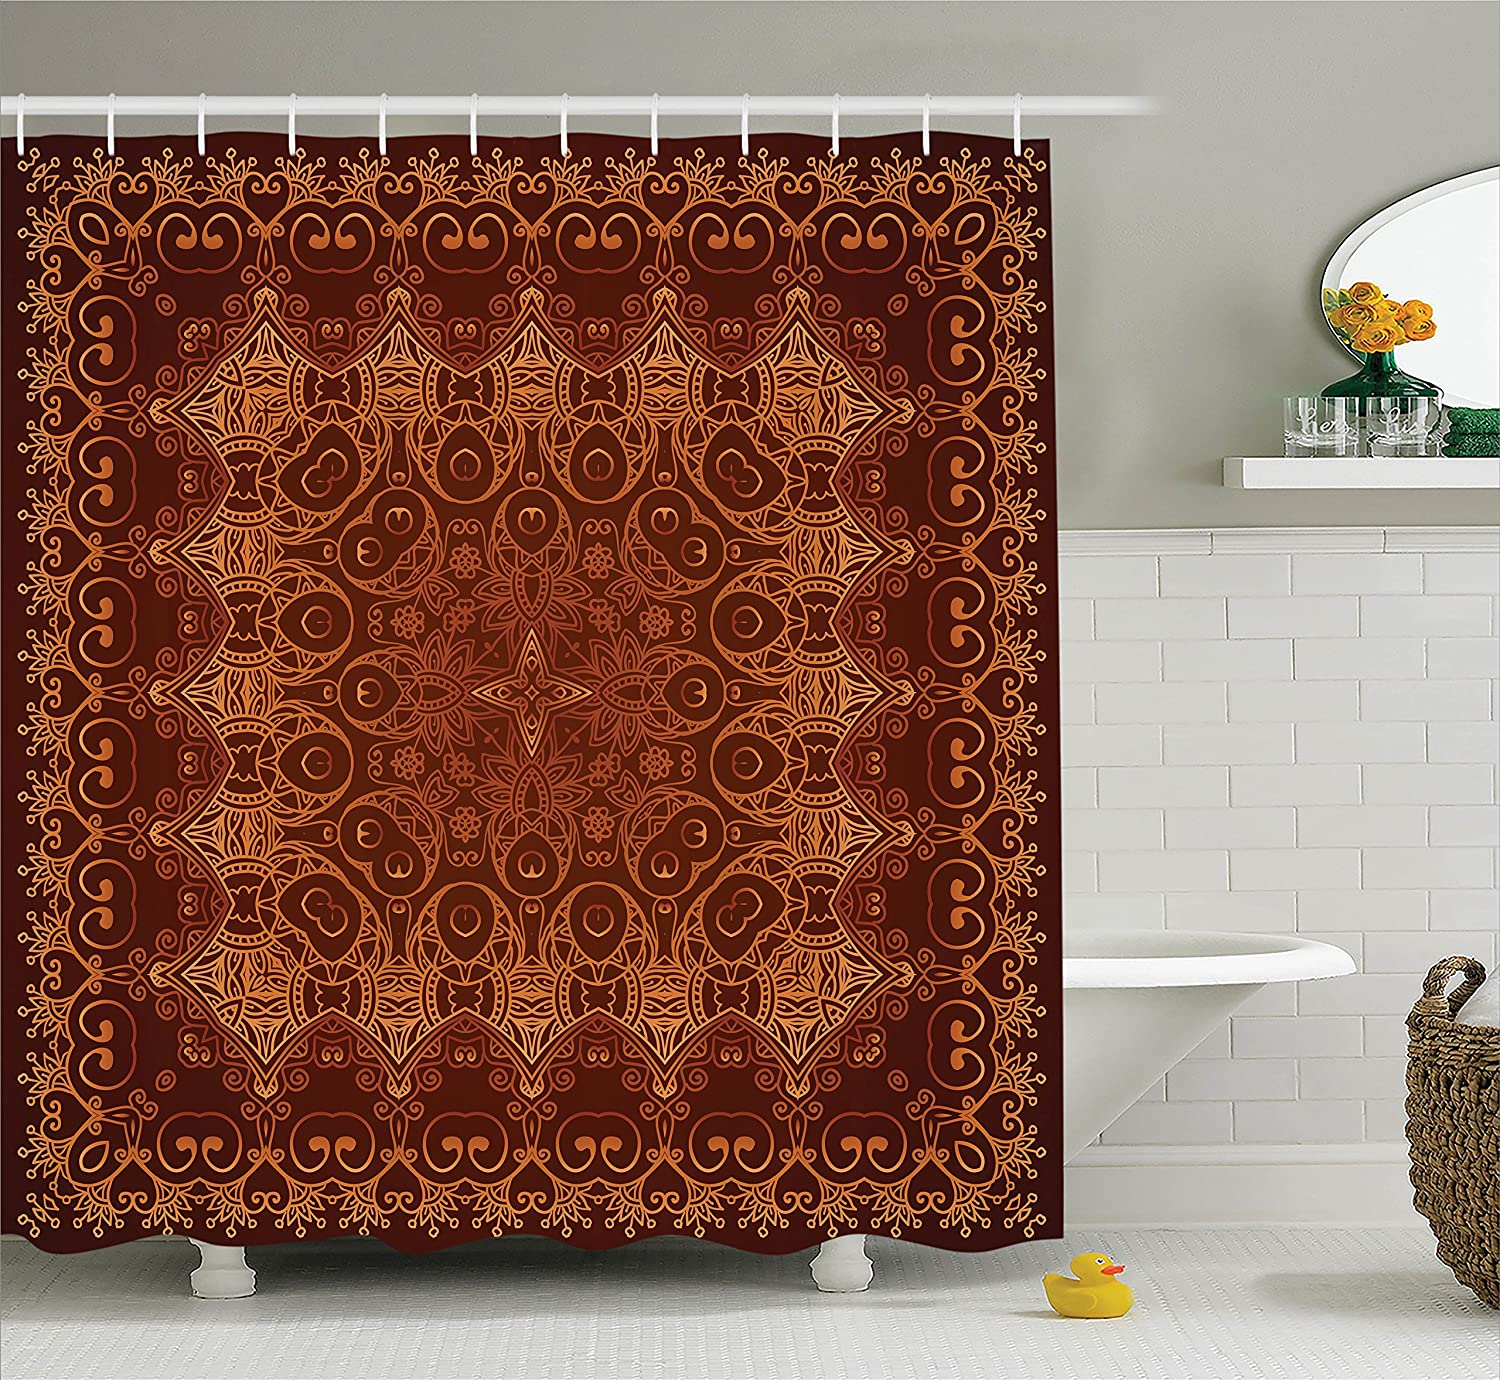 Amazon.com: Antique Shower Curtain Decor by Ambesonne, Vintage Lacy ...